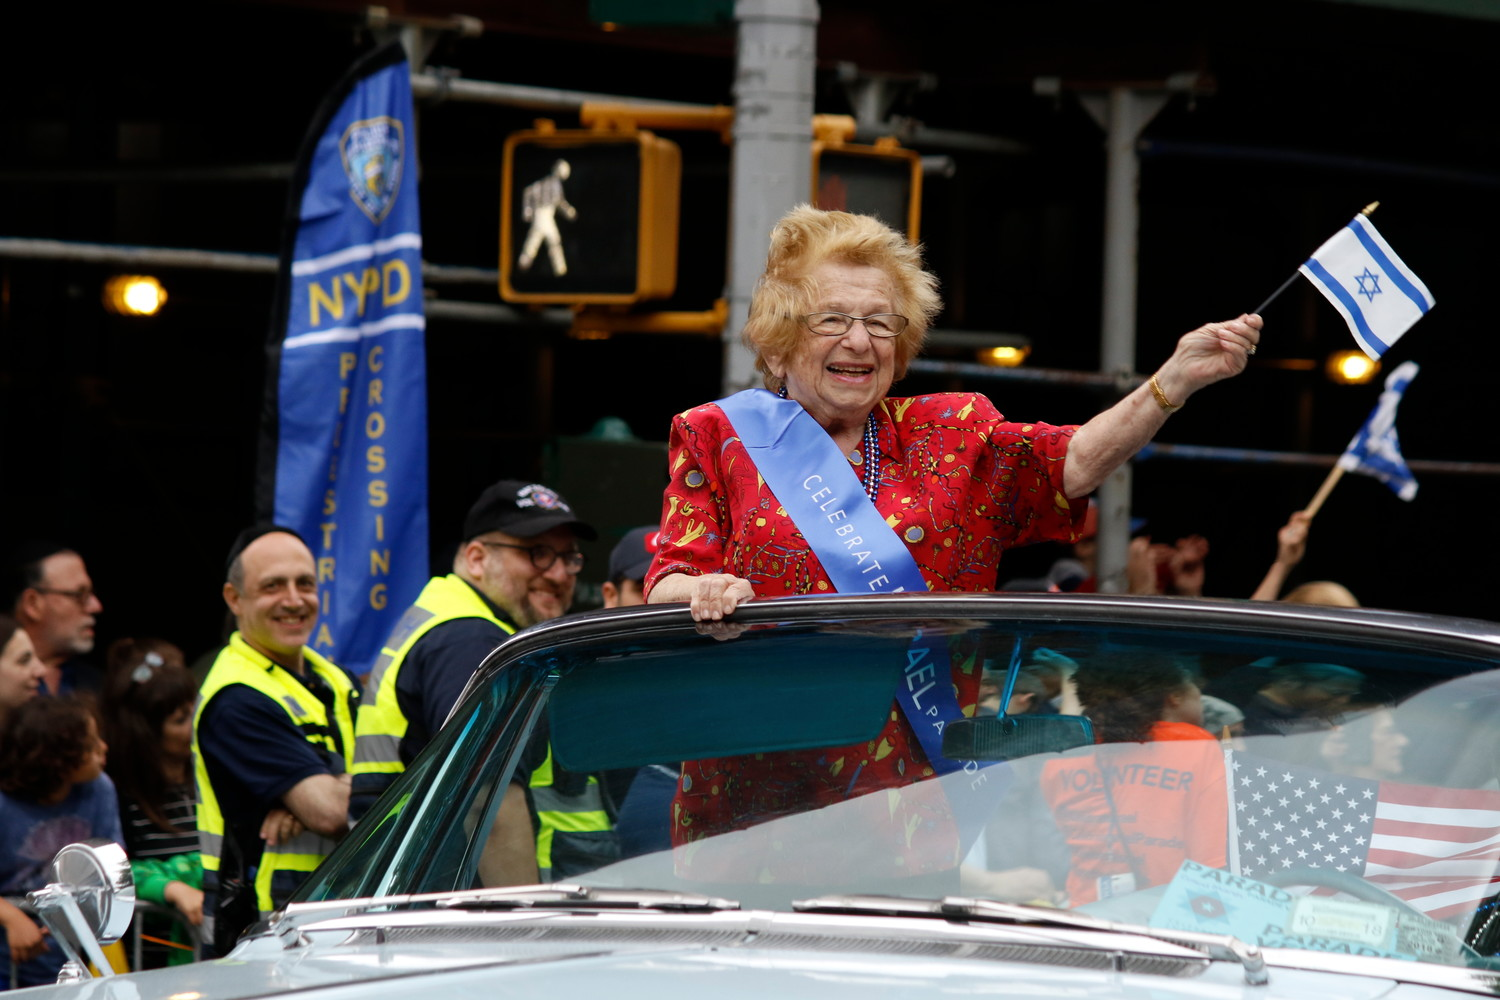 90-year-old Dr. Ruth Westheimer was a crowd favorite.